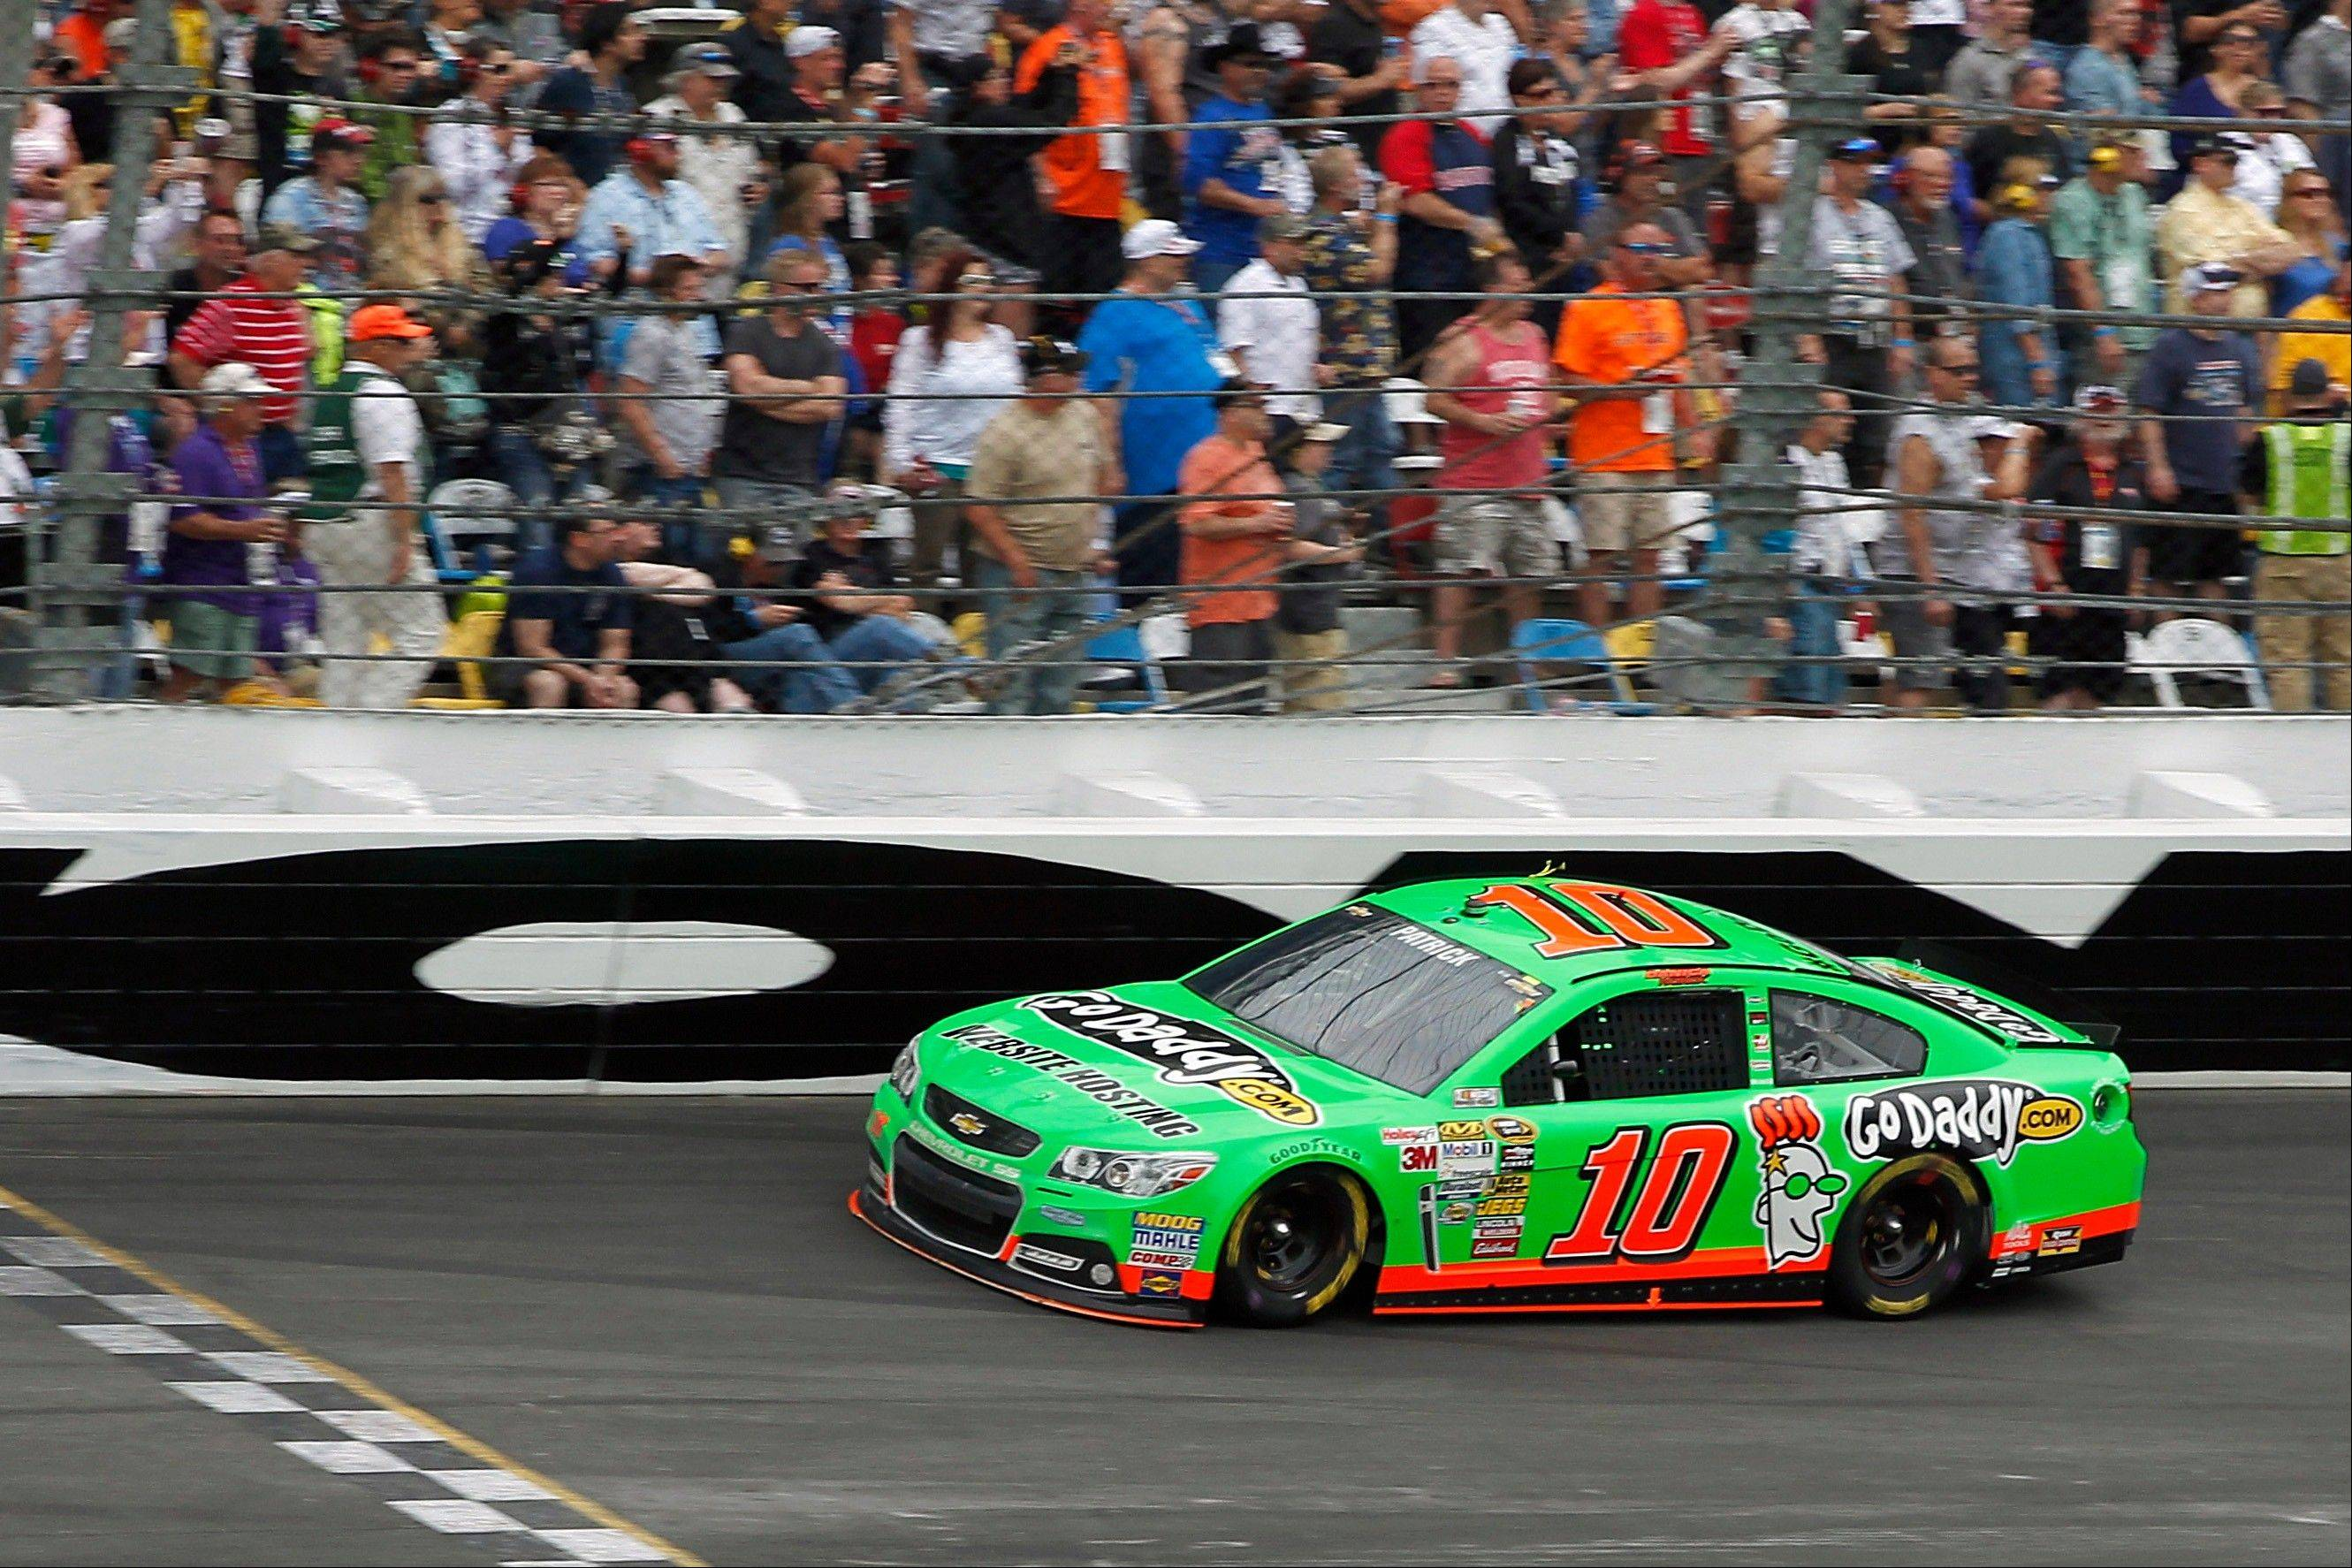 Danica Patrick�s eighth-place finish in the Daytona 500 helped Fox post a 30 percent increase in its television ratings for the race, according to preliminary figures. It was the highest finish ever by a female driver at the Daytona 500.